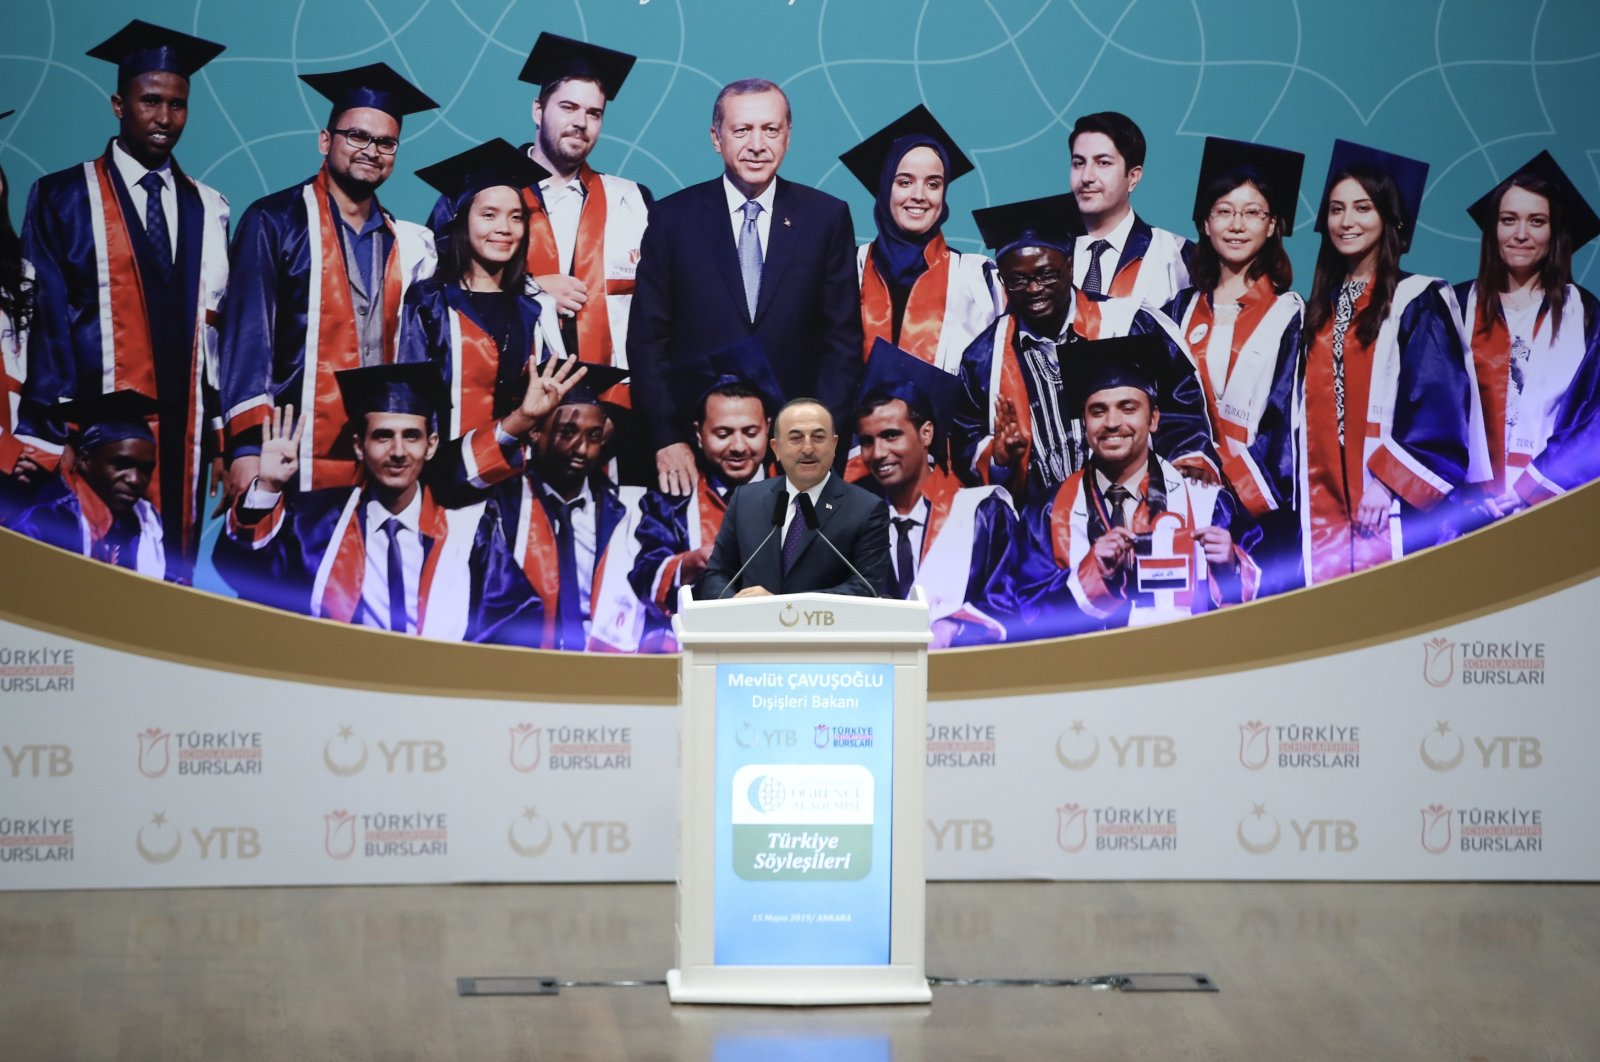 Foreign Minister Mevlüt Çavuşoğlu addresses international students who benefited from the Türkiye Scholarships program during a conference in the capital Ankara, Turkey, May 16, 2019. (AA Photo)